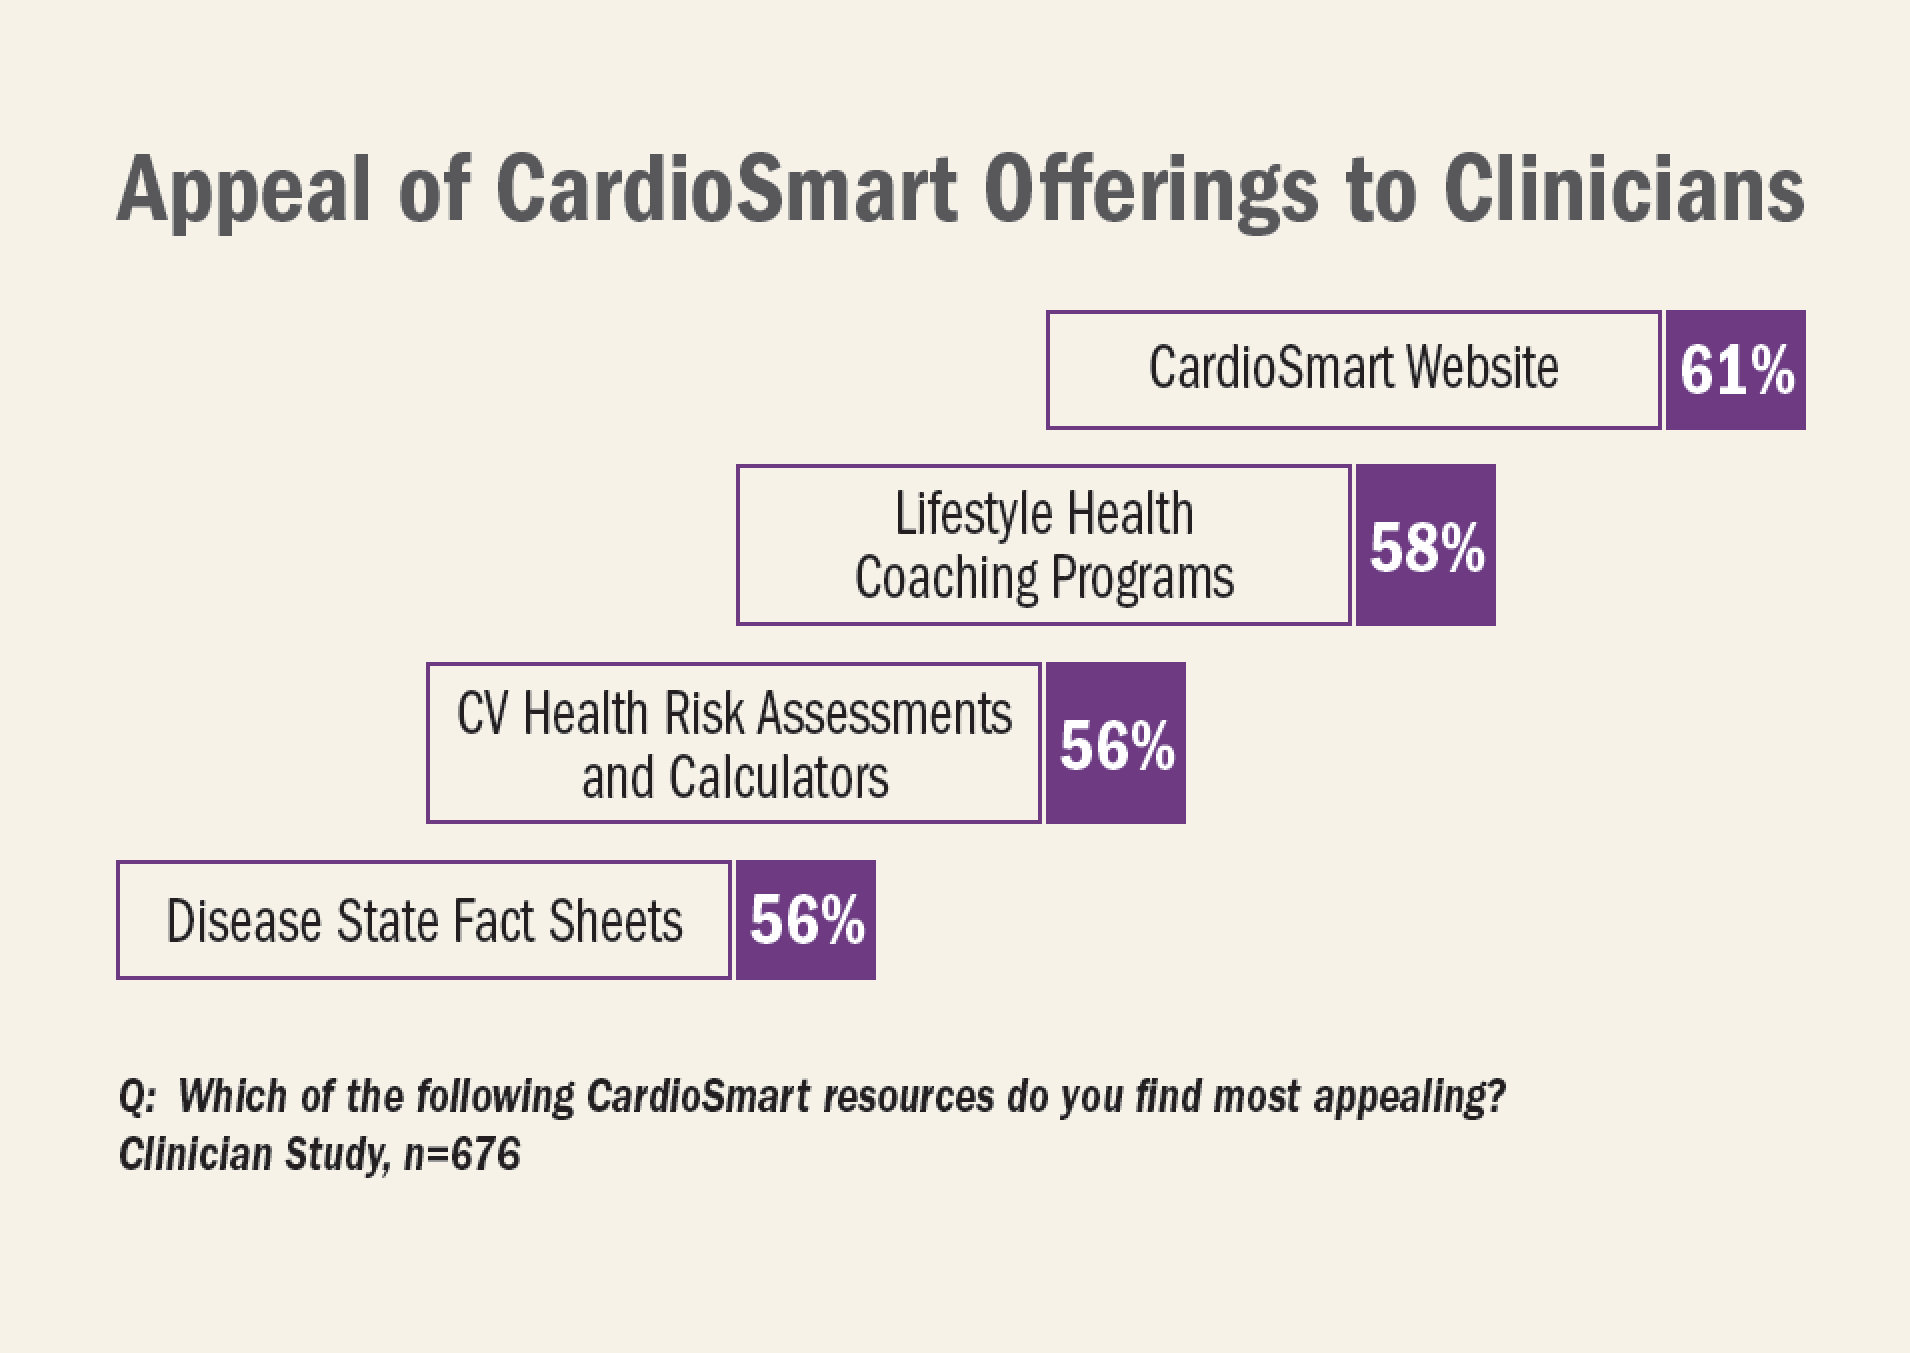 Appeal of CardioSmart Offerings to Clinicians